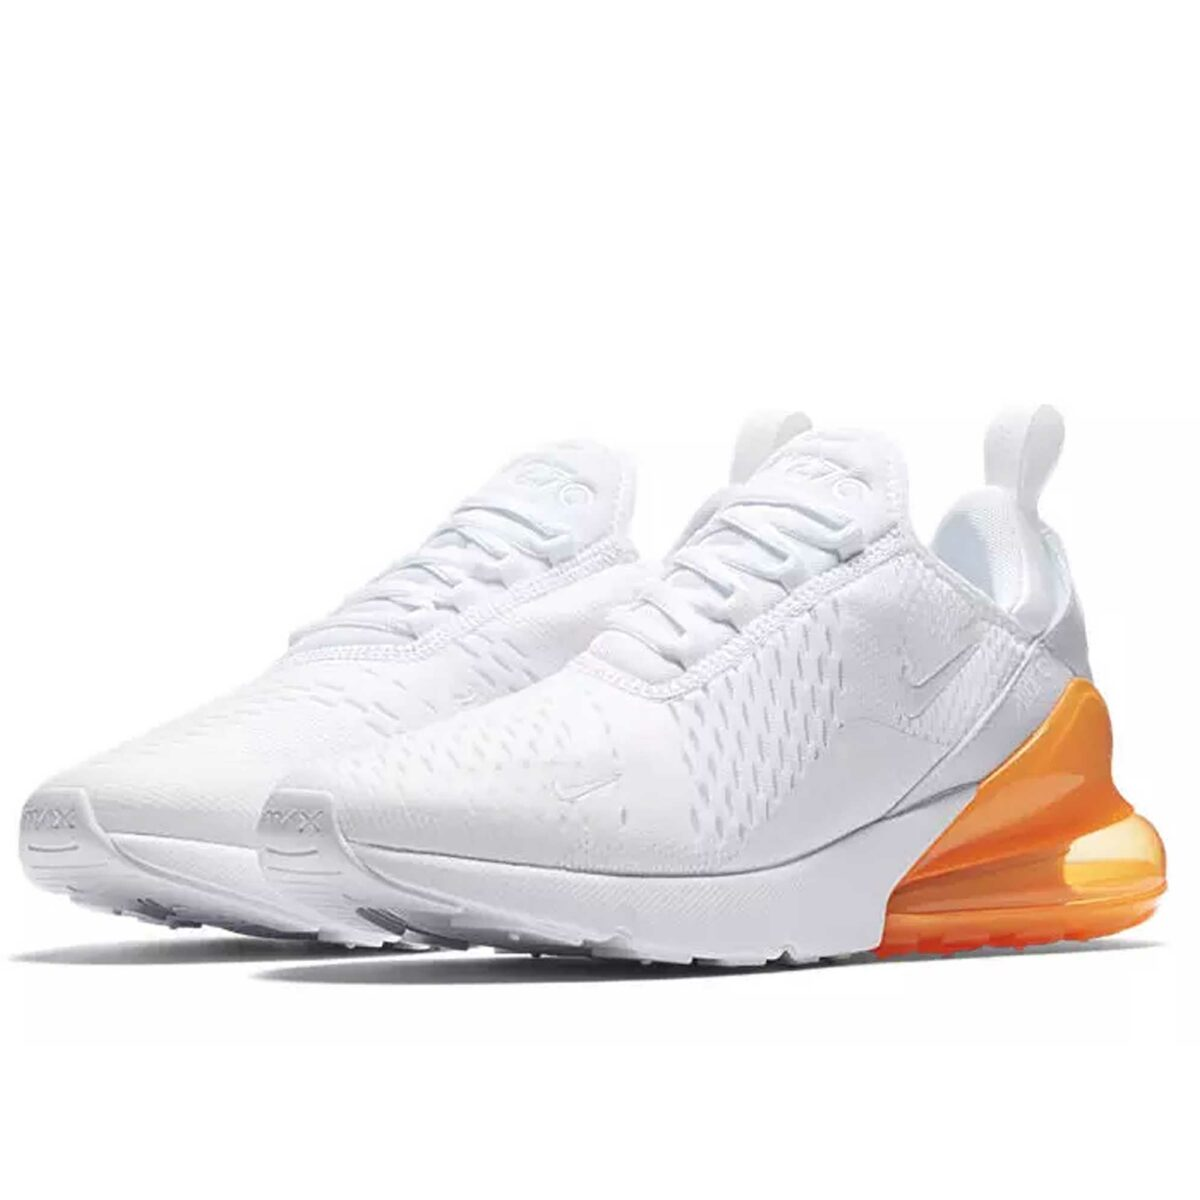 nike air max 270 white total orange ah8050_102 купить